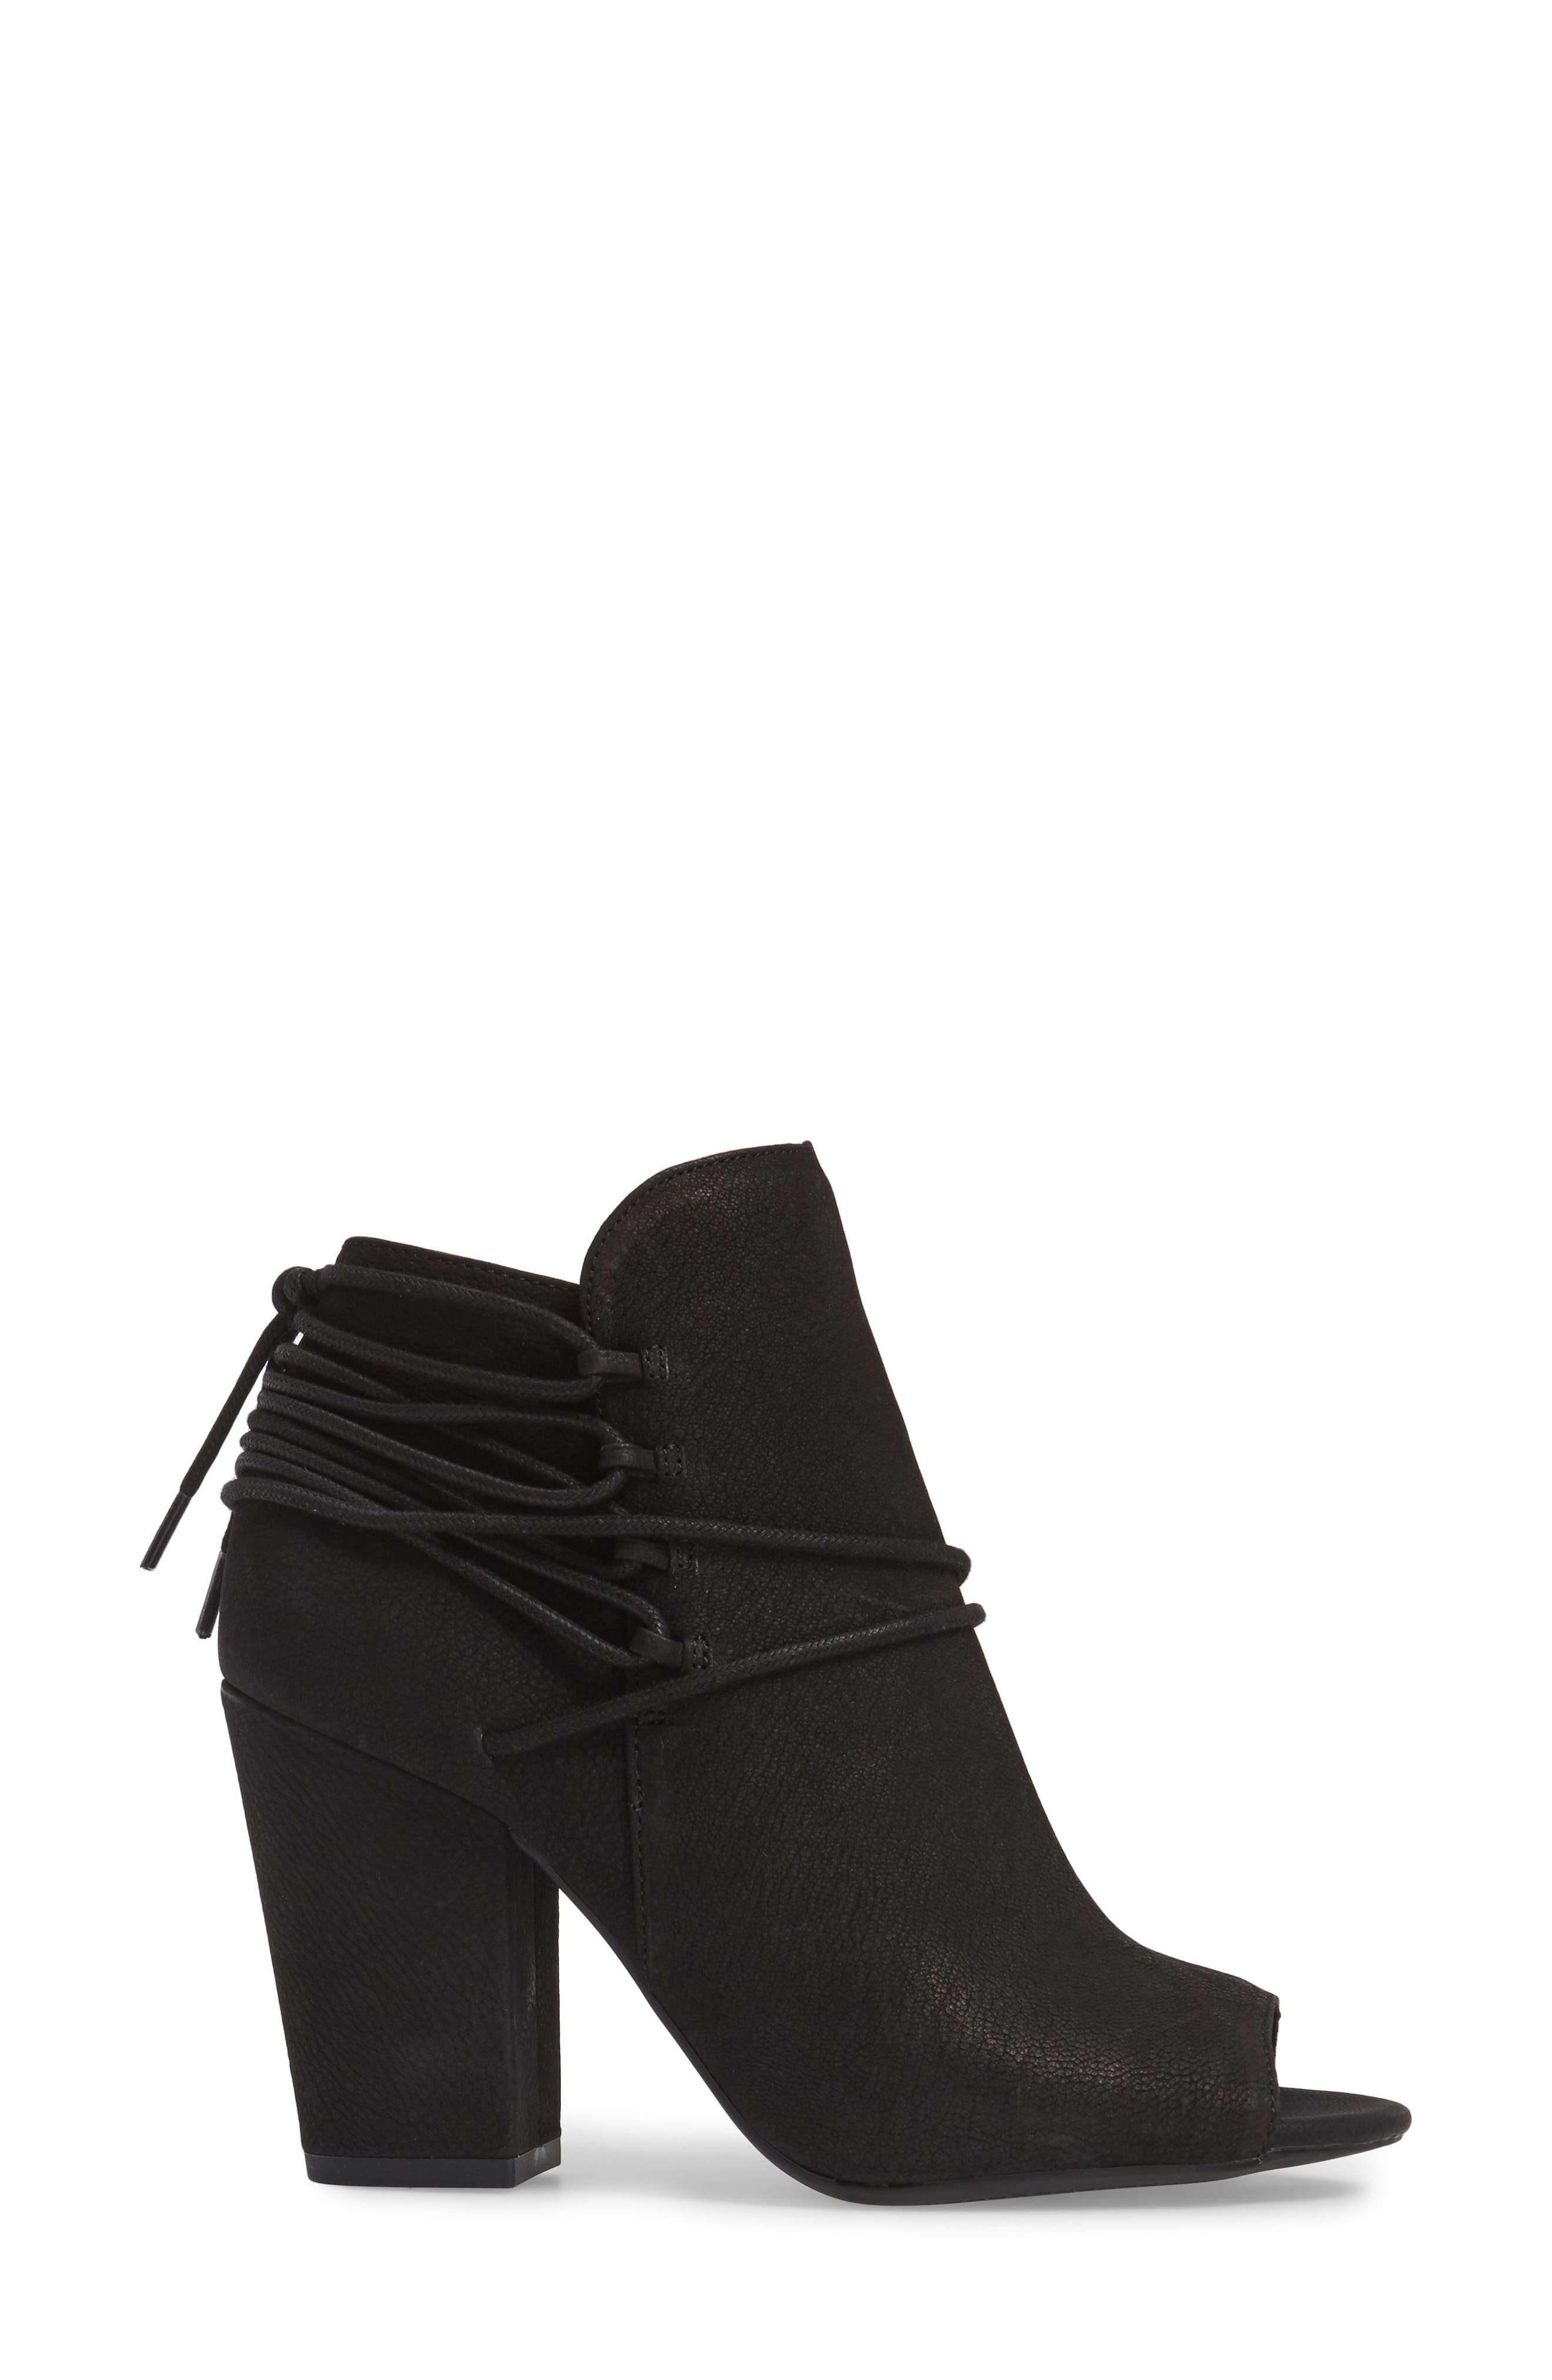 Remni Peep Toe Bootie,                             Alternate thumbnail 3, color,                             001